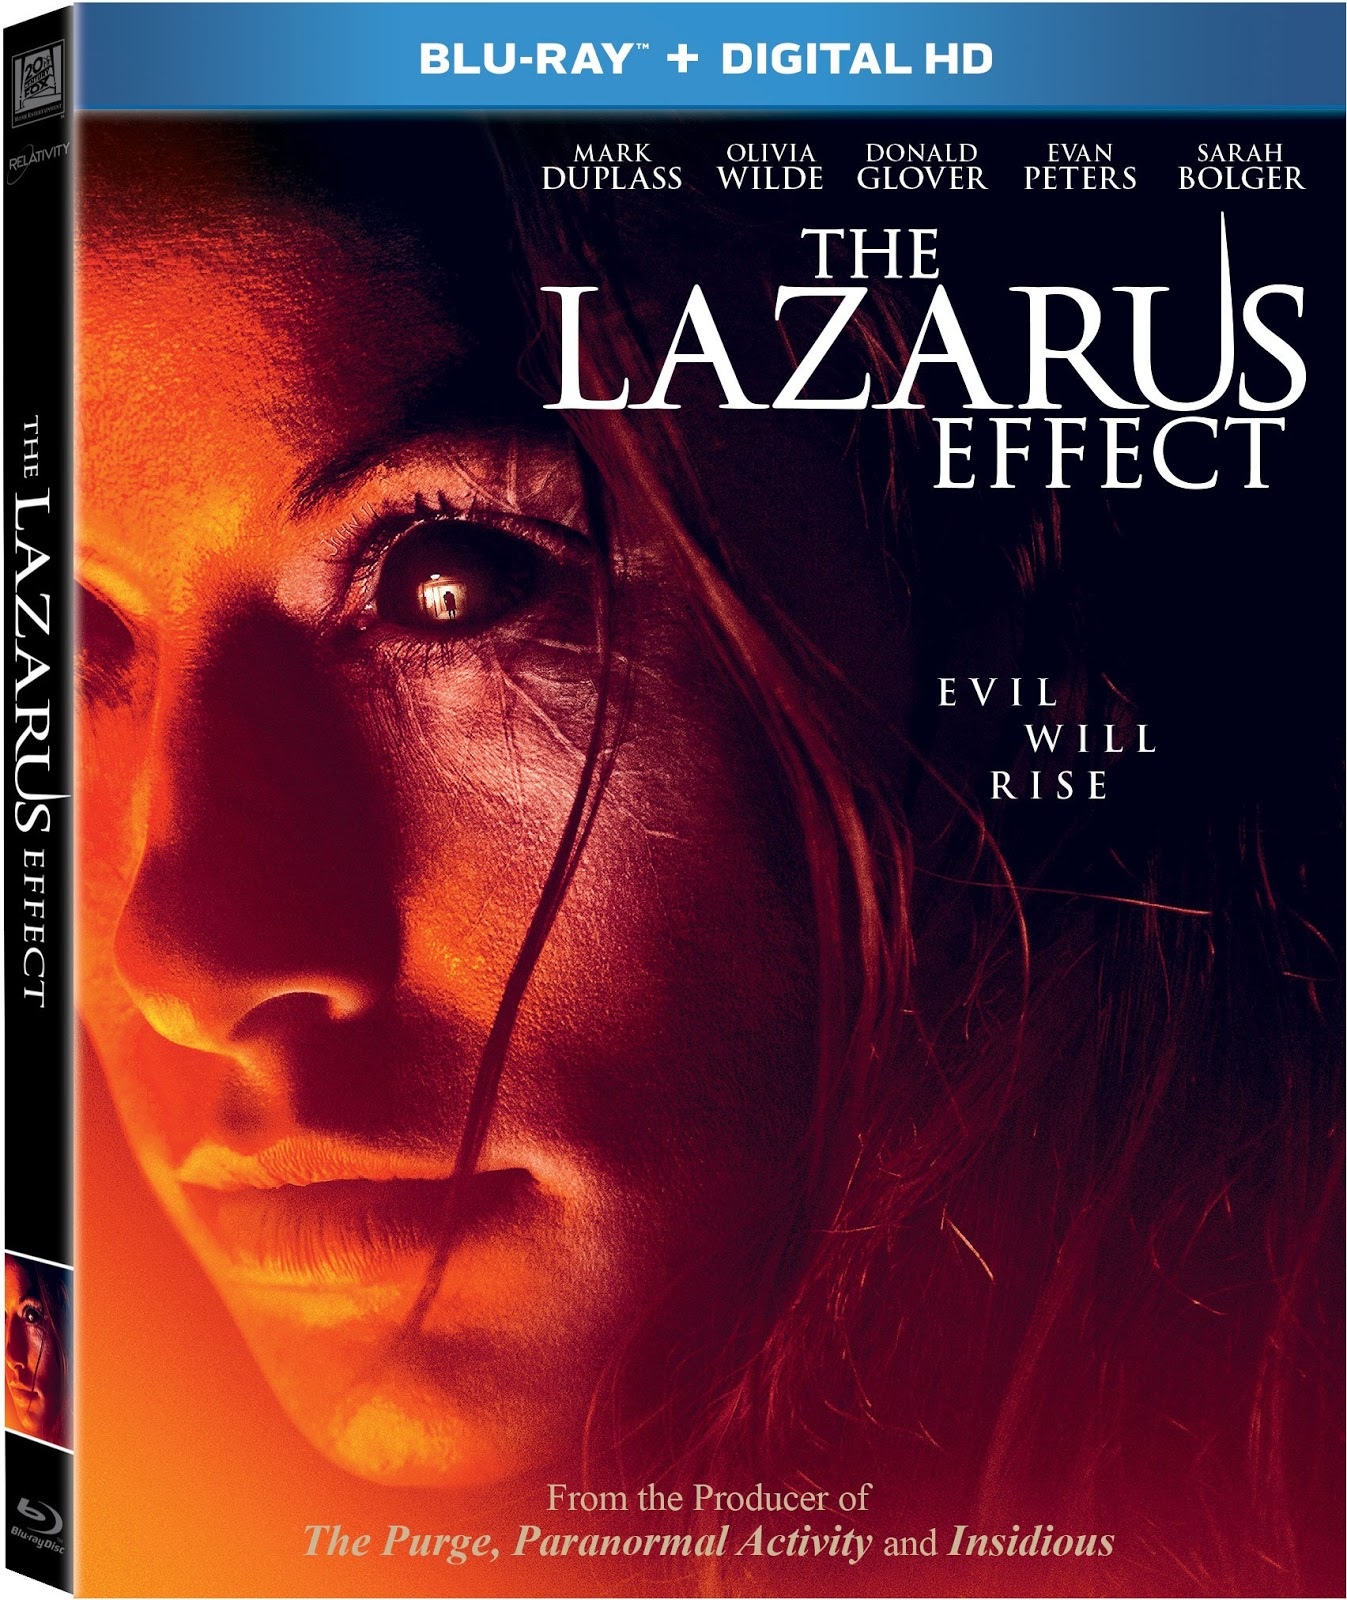 The Lazarus Effect (2015) 1080p BD25 Cover Caratula